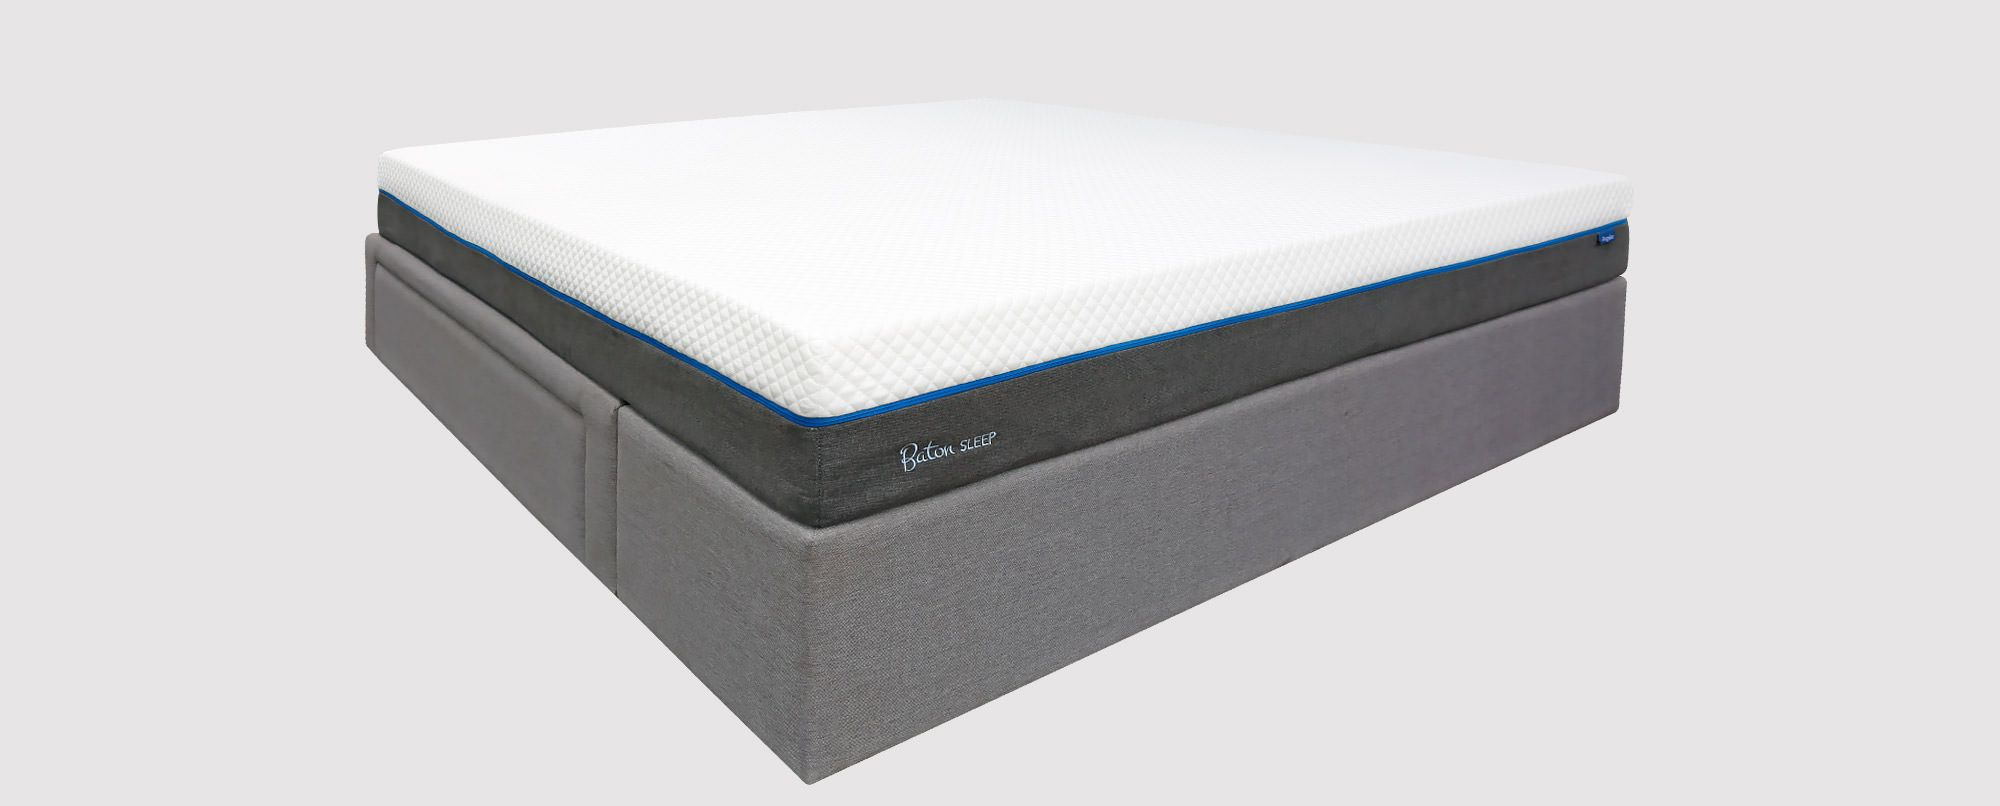 Baton Sleep Mattress Mattress Singapore Mattress King Size Mattress King Size Bed Mattress